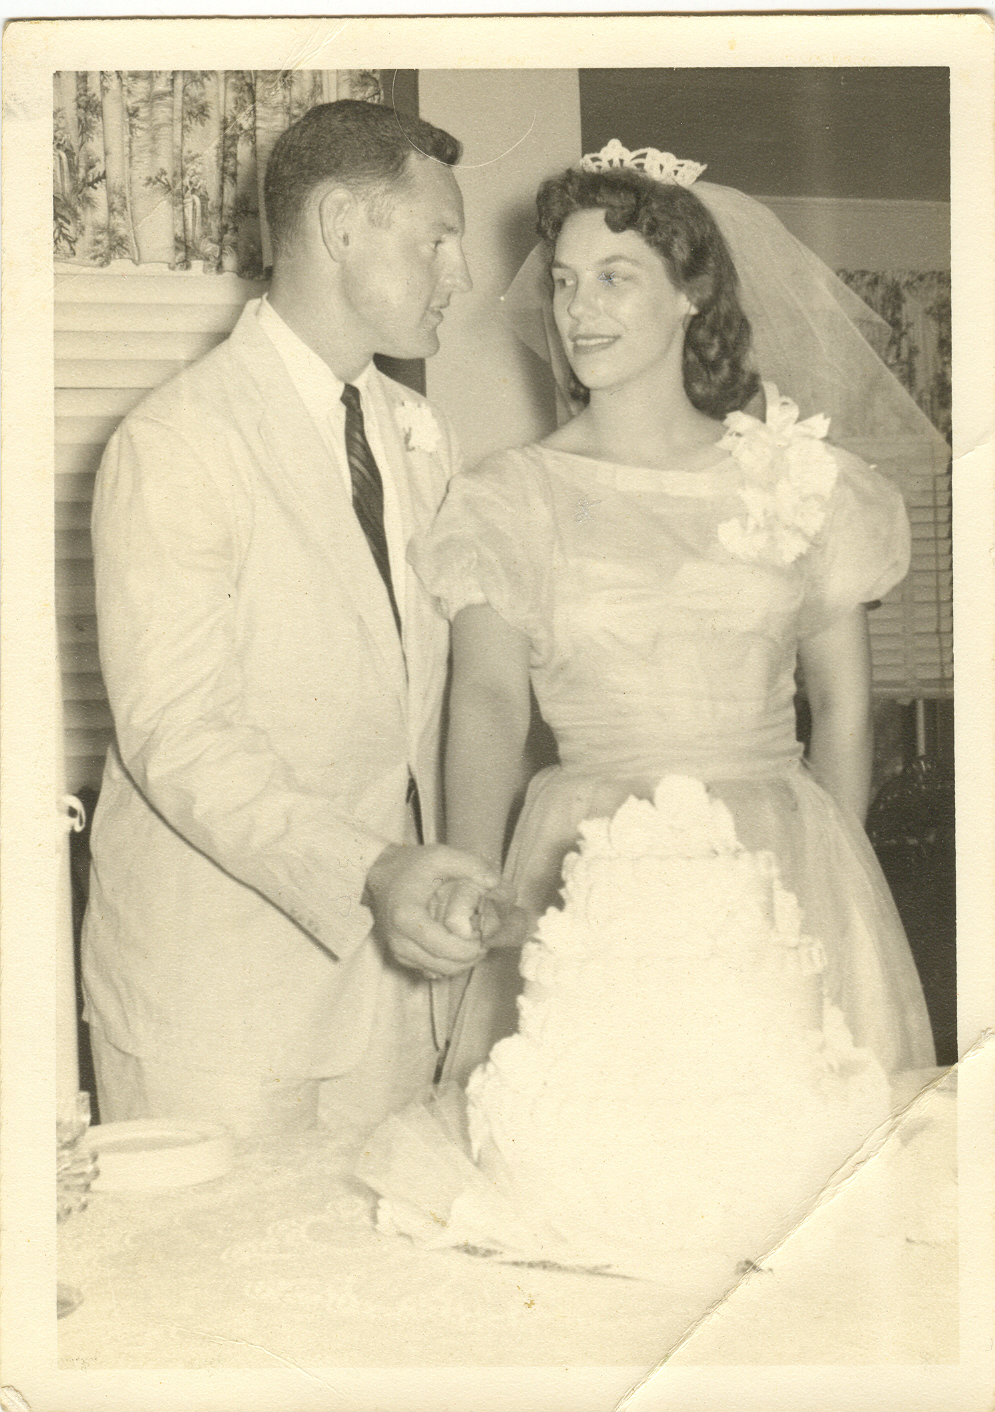 Van and Berna Wedding 1959